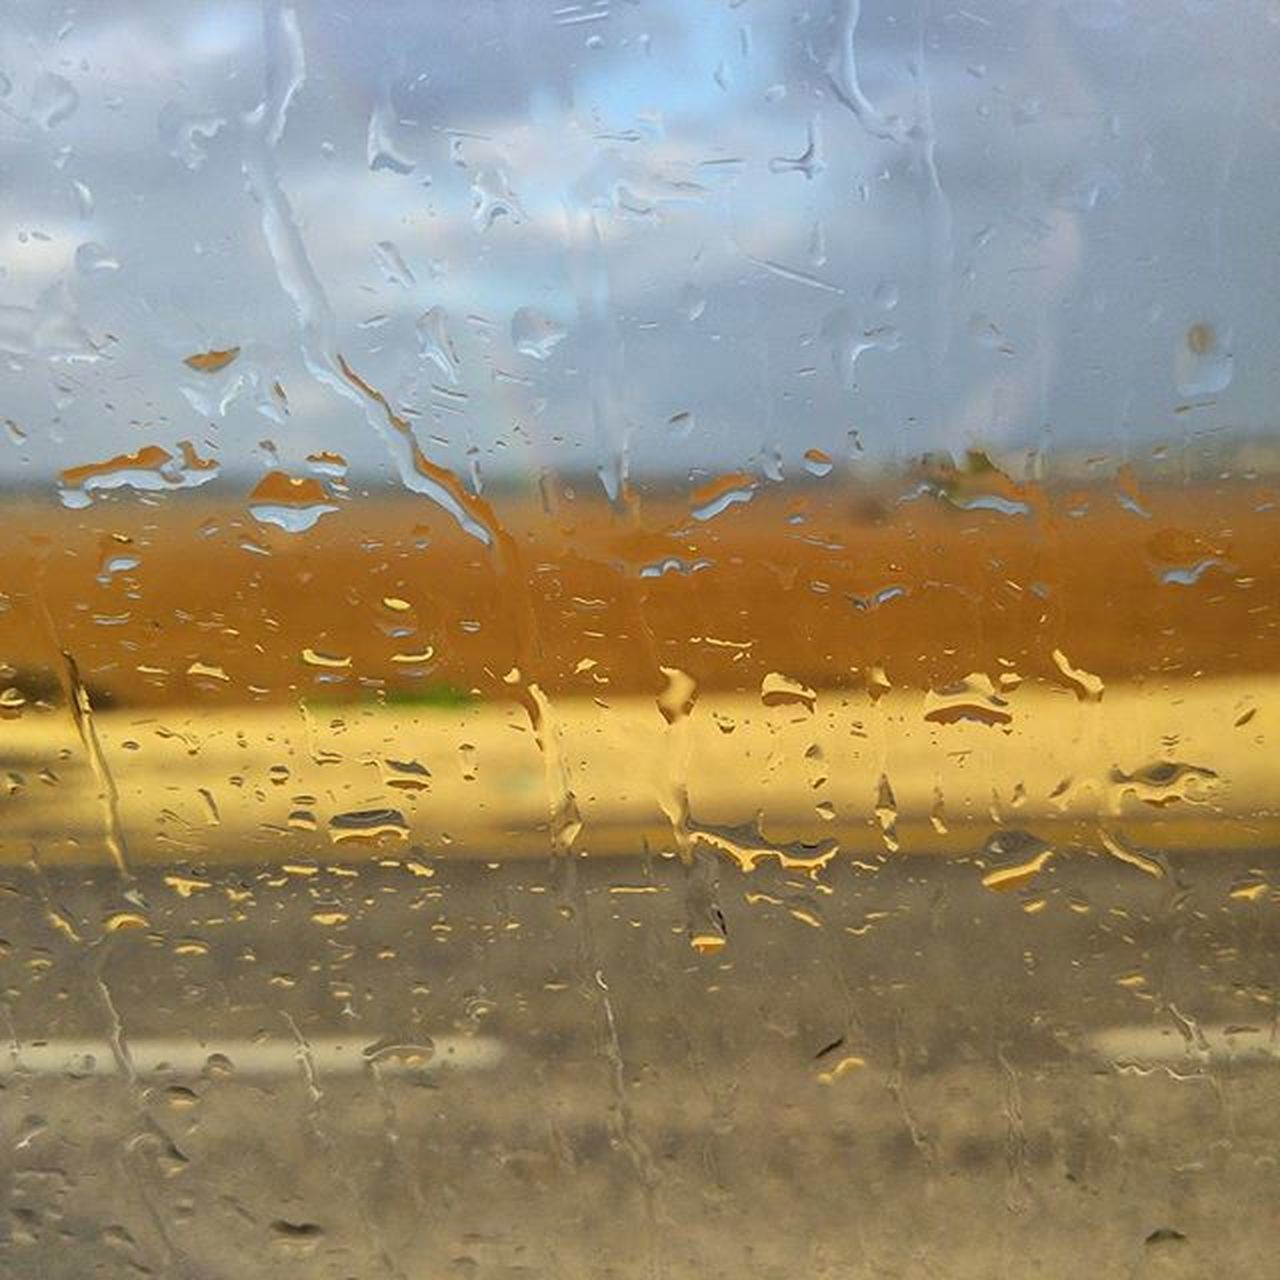 Let it rain over me. Raindrops Rain Rainbow Markanthony Natural Nature Window Fields Field Clouds Road Israel Instagram Insta_Israel Israel_instagram Ig_worldclub Ig_eurasia Ig_today Ig_daily Ig_israel Ig_europe Igers Ig_nature